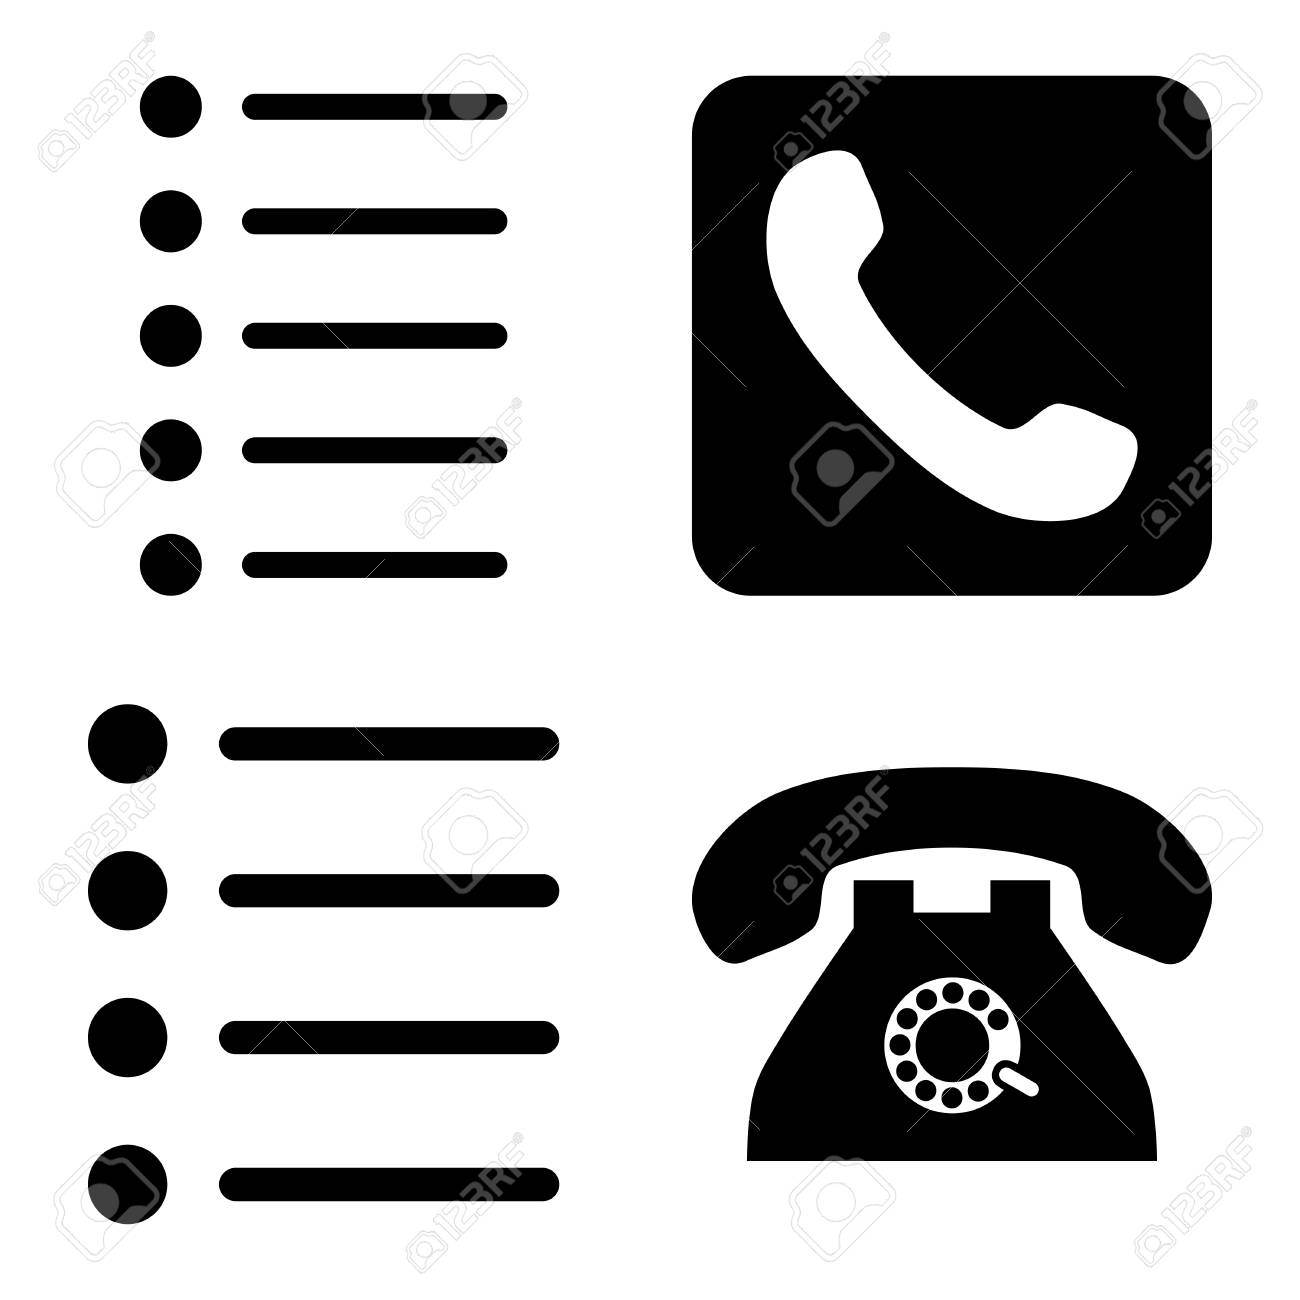 Phone List Vector Icons Style Is Black Flat Symbols On A White